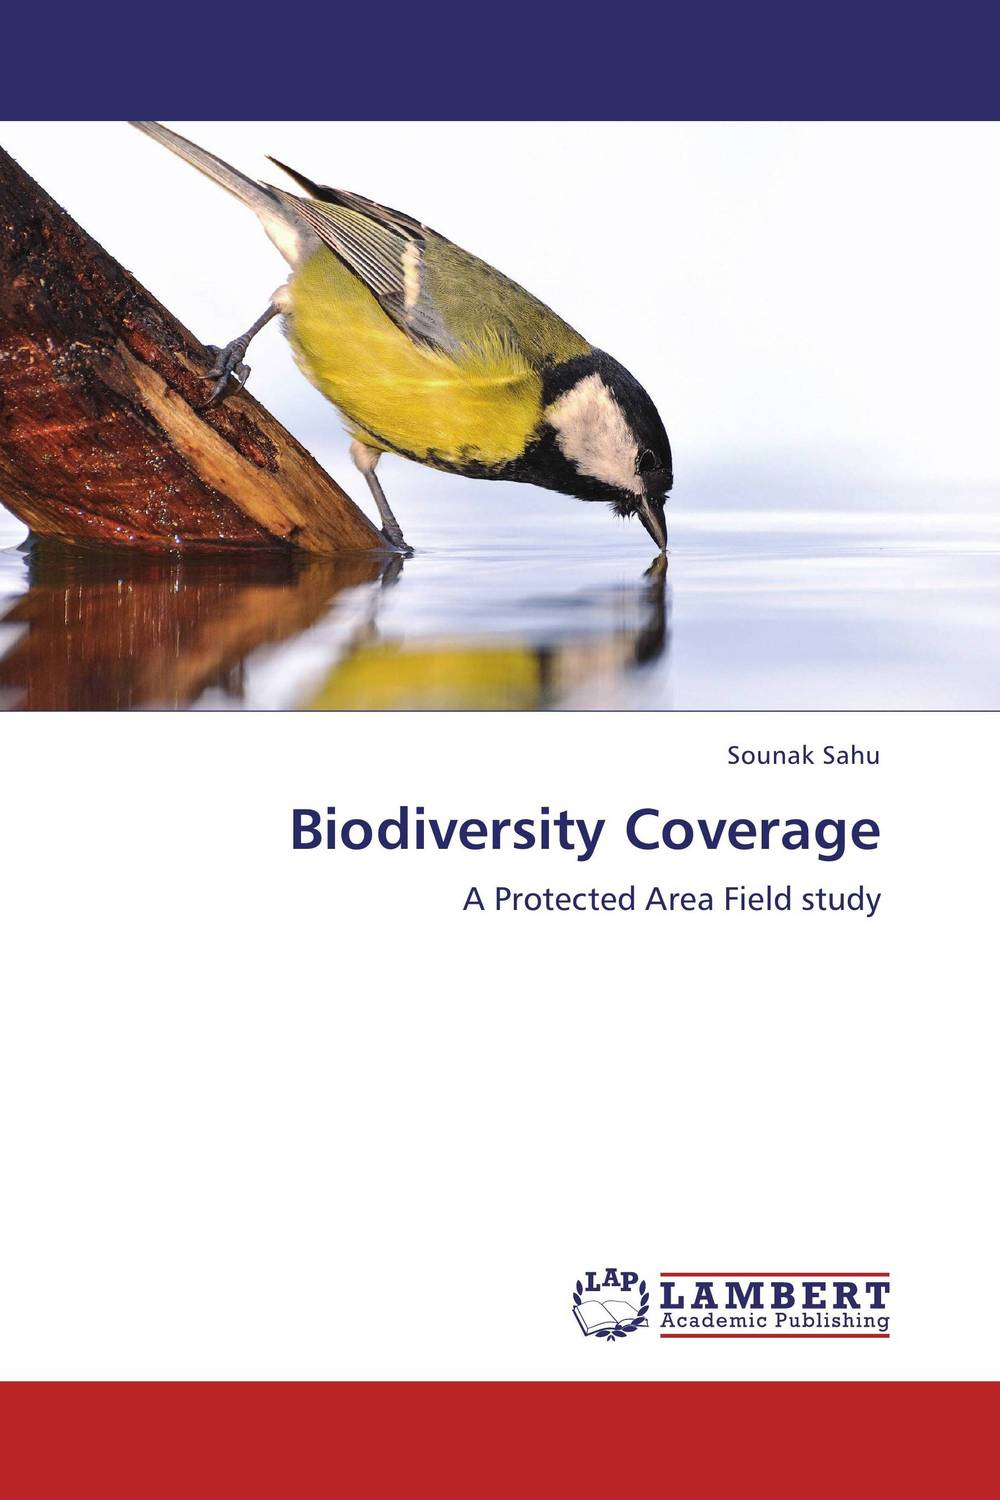 Biodiversity Coverage ripudaman singh arihant kaur bhalla and er gurkamal singh adolescents of intact families and orphanages